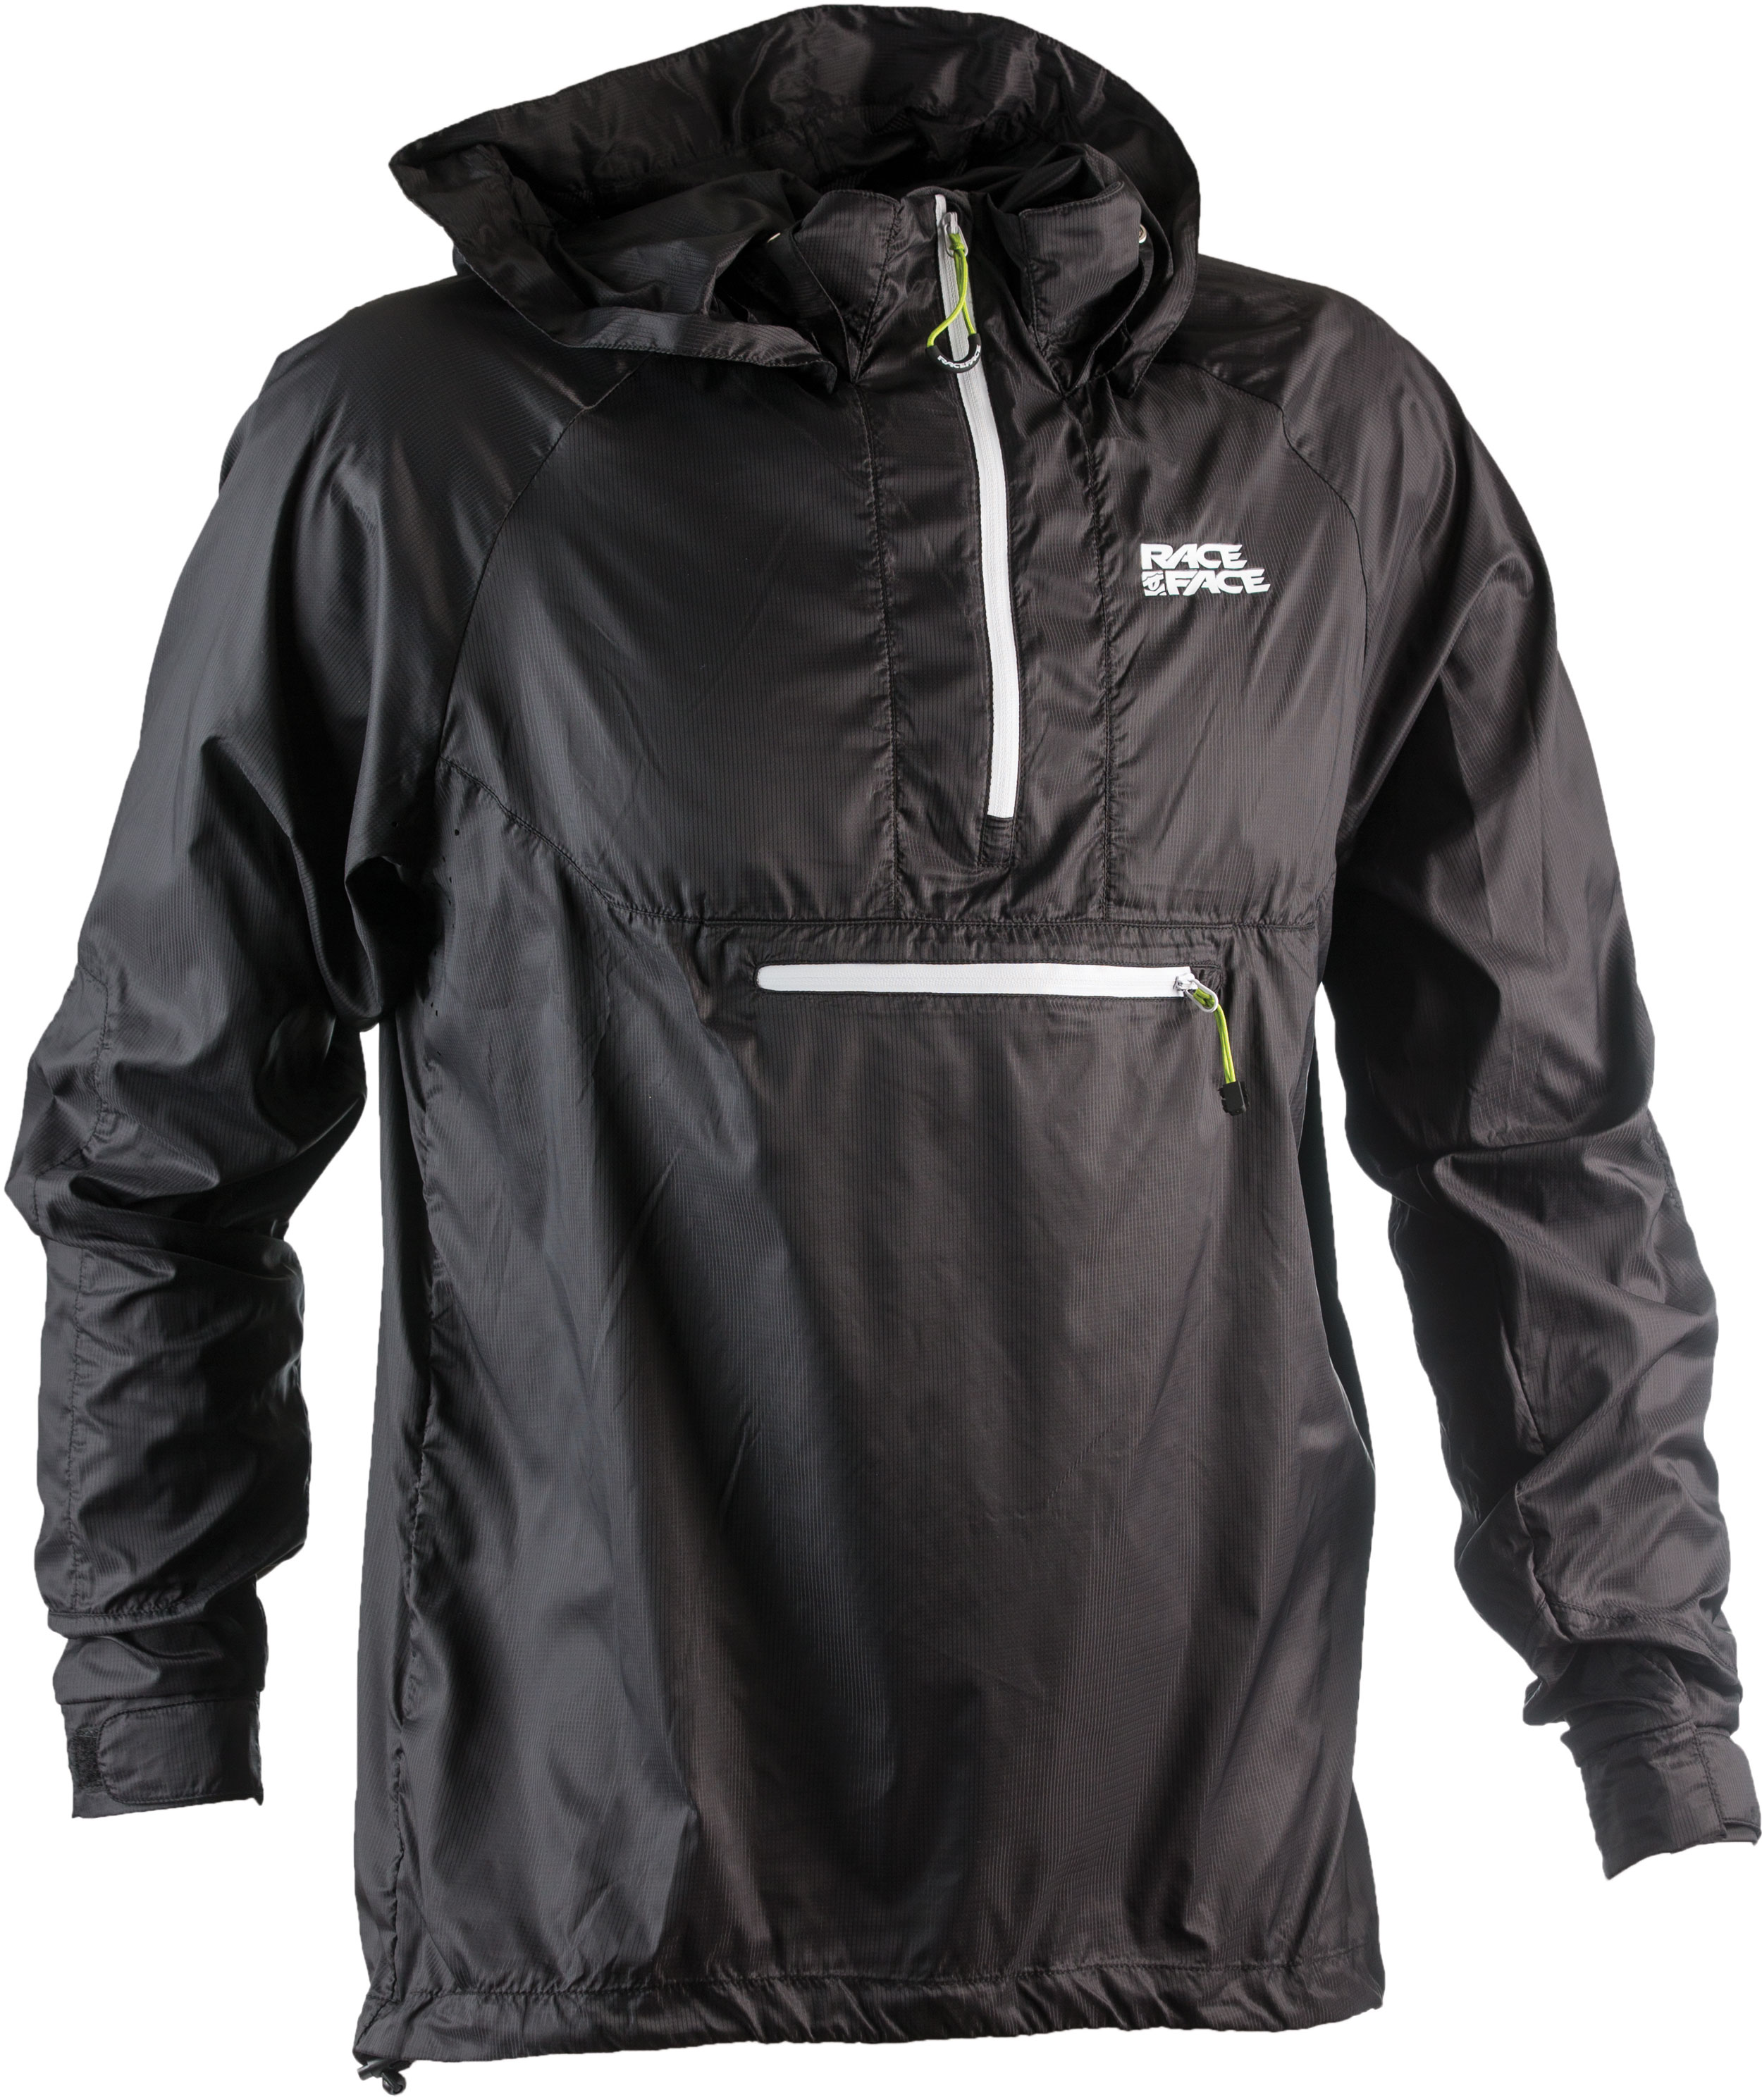 4ba37820428 Best summer mountain bike clothing deals available right now - MBR